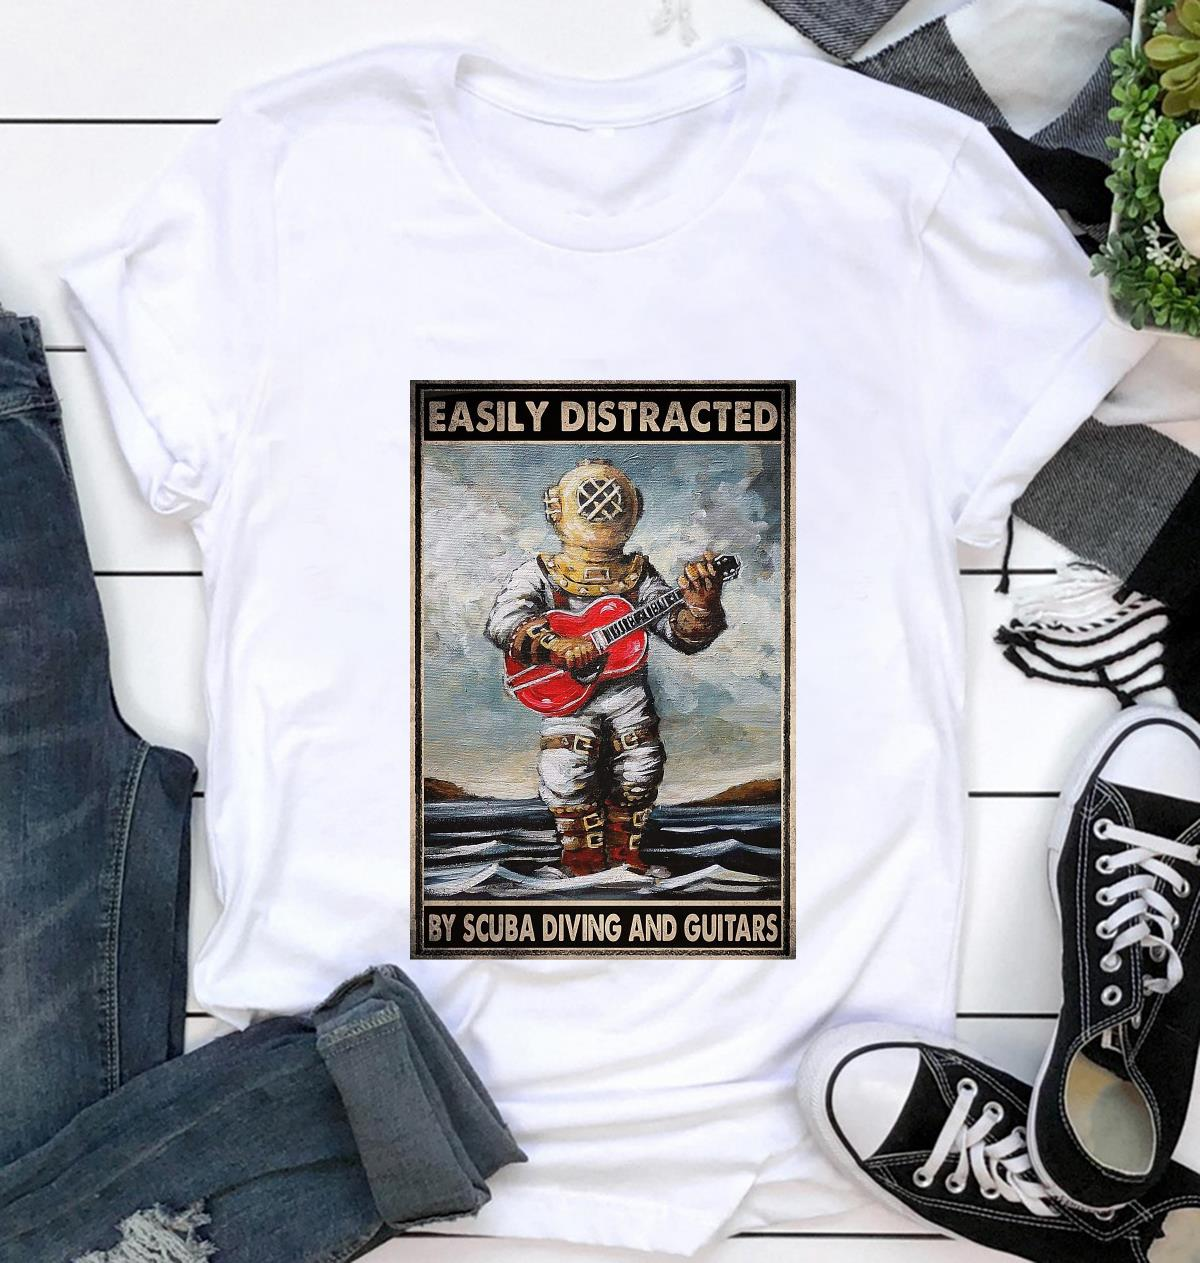 Easily distracted by scuba diving and guitars poster canvas t-shirt